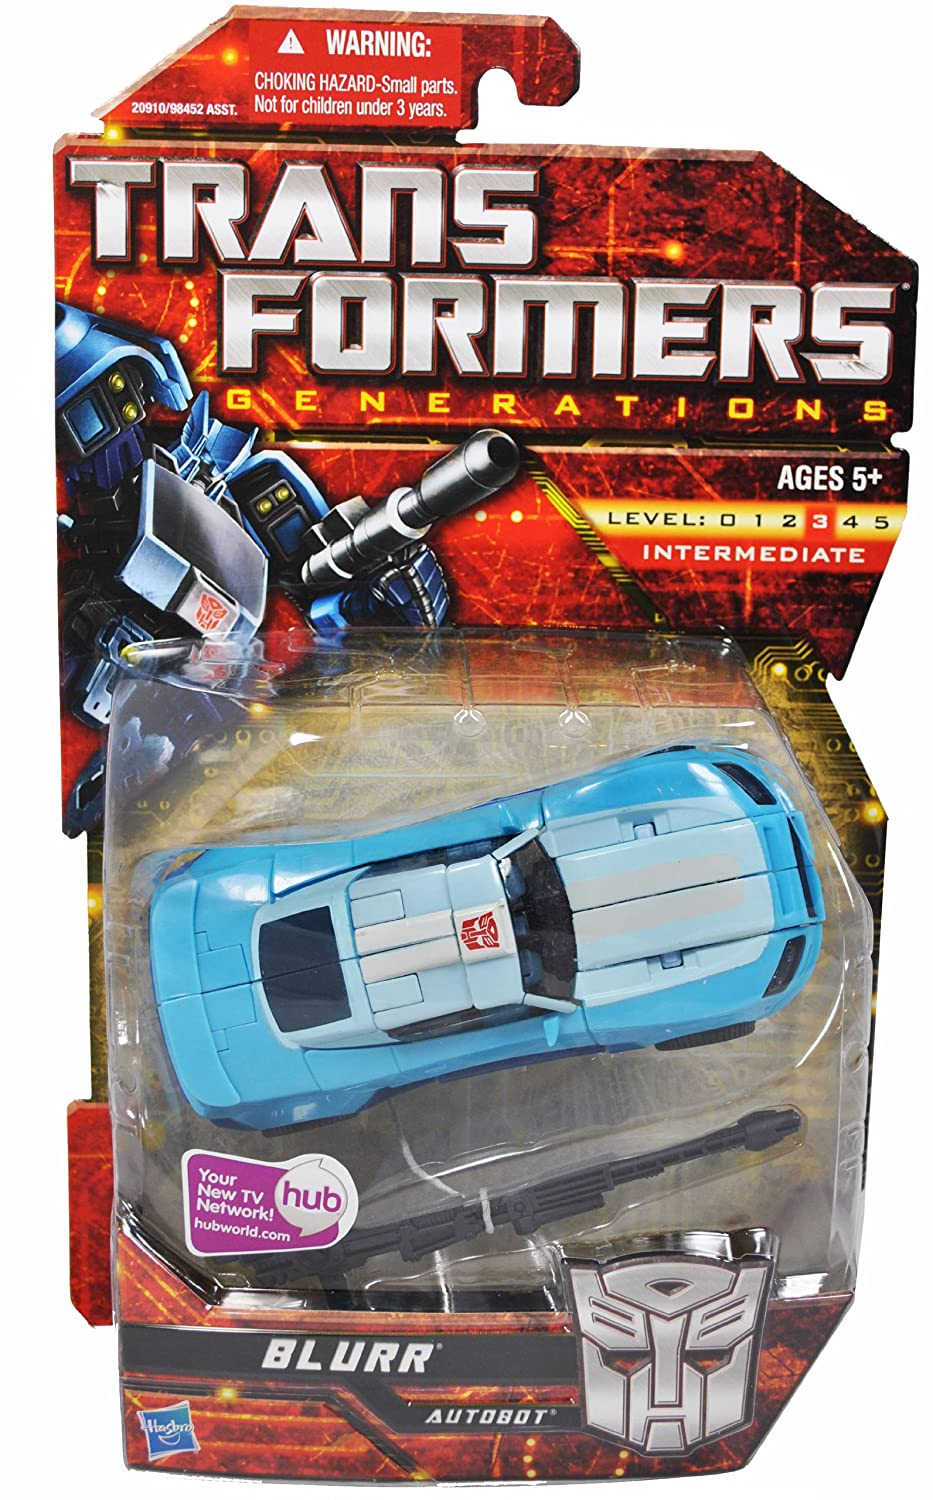 Transformers Generations Series Deluxe Class 6 Inch Tall Robot Action Figure - BLURR with Dual Laser Blasters (Vehicle Mode: Courier Car) by Hasbro: ...